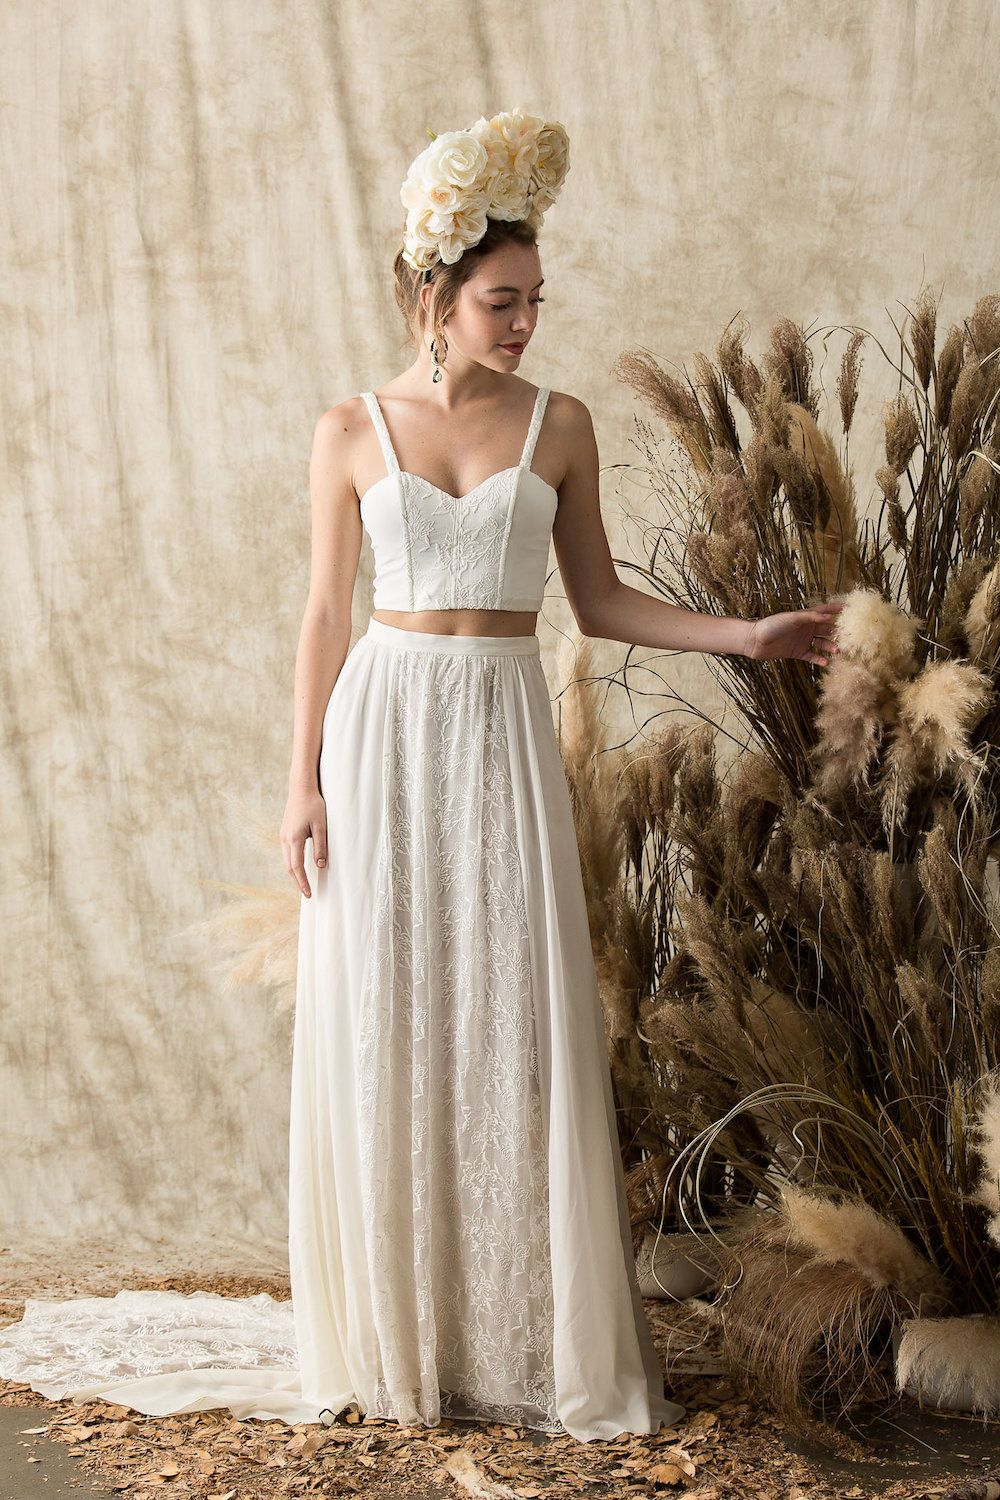 Camelia Silk Two Piece Wedding Dress Crop Top And Skirt With Train Crop Top Wedding Dress Wedding Dresses Two Piece Wedding Dress